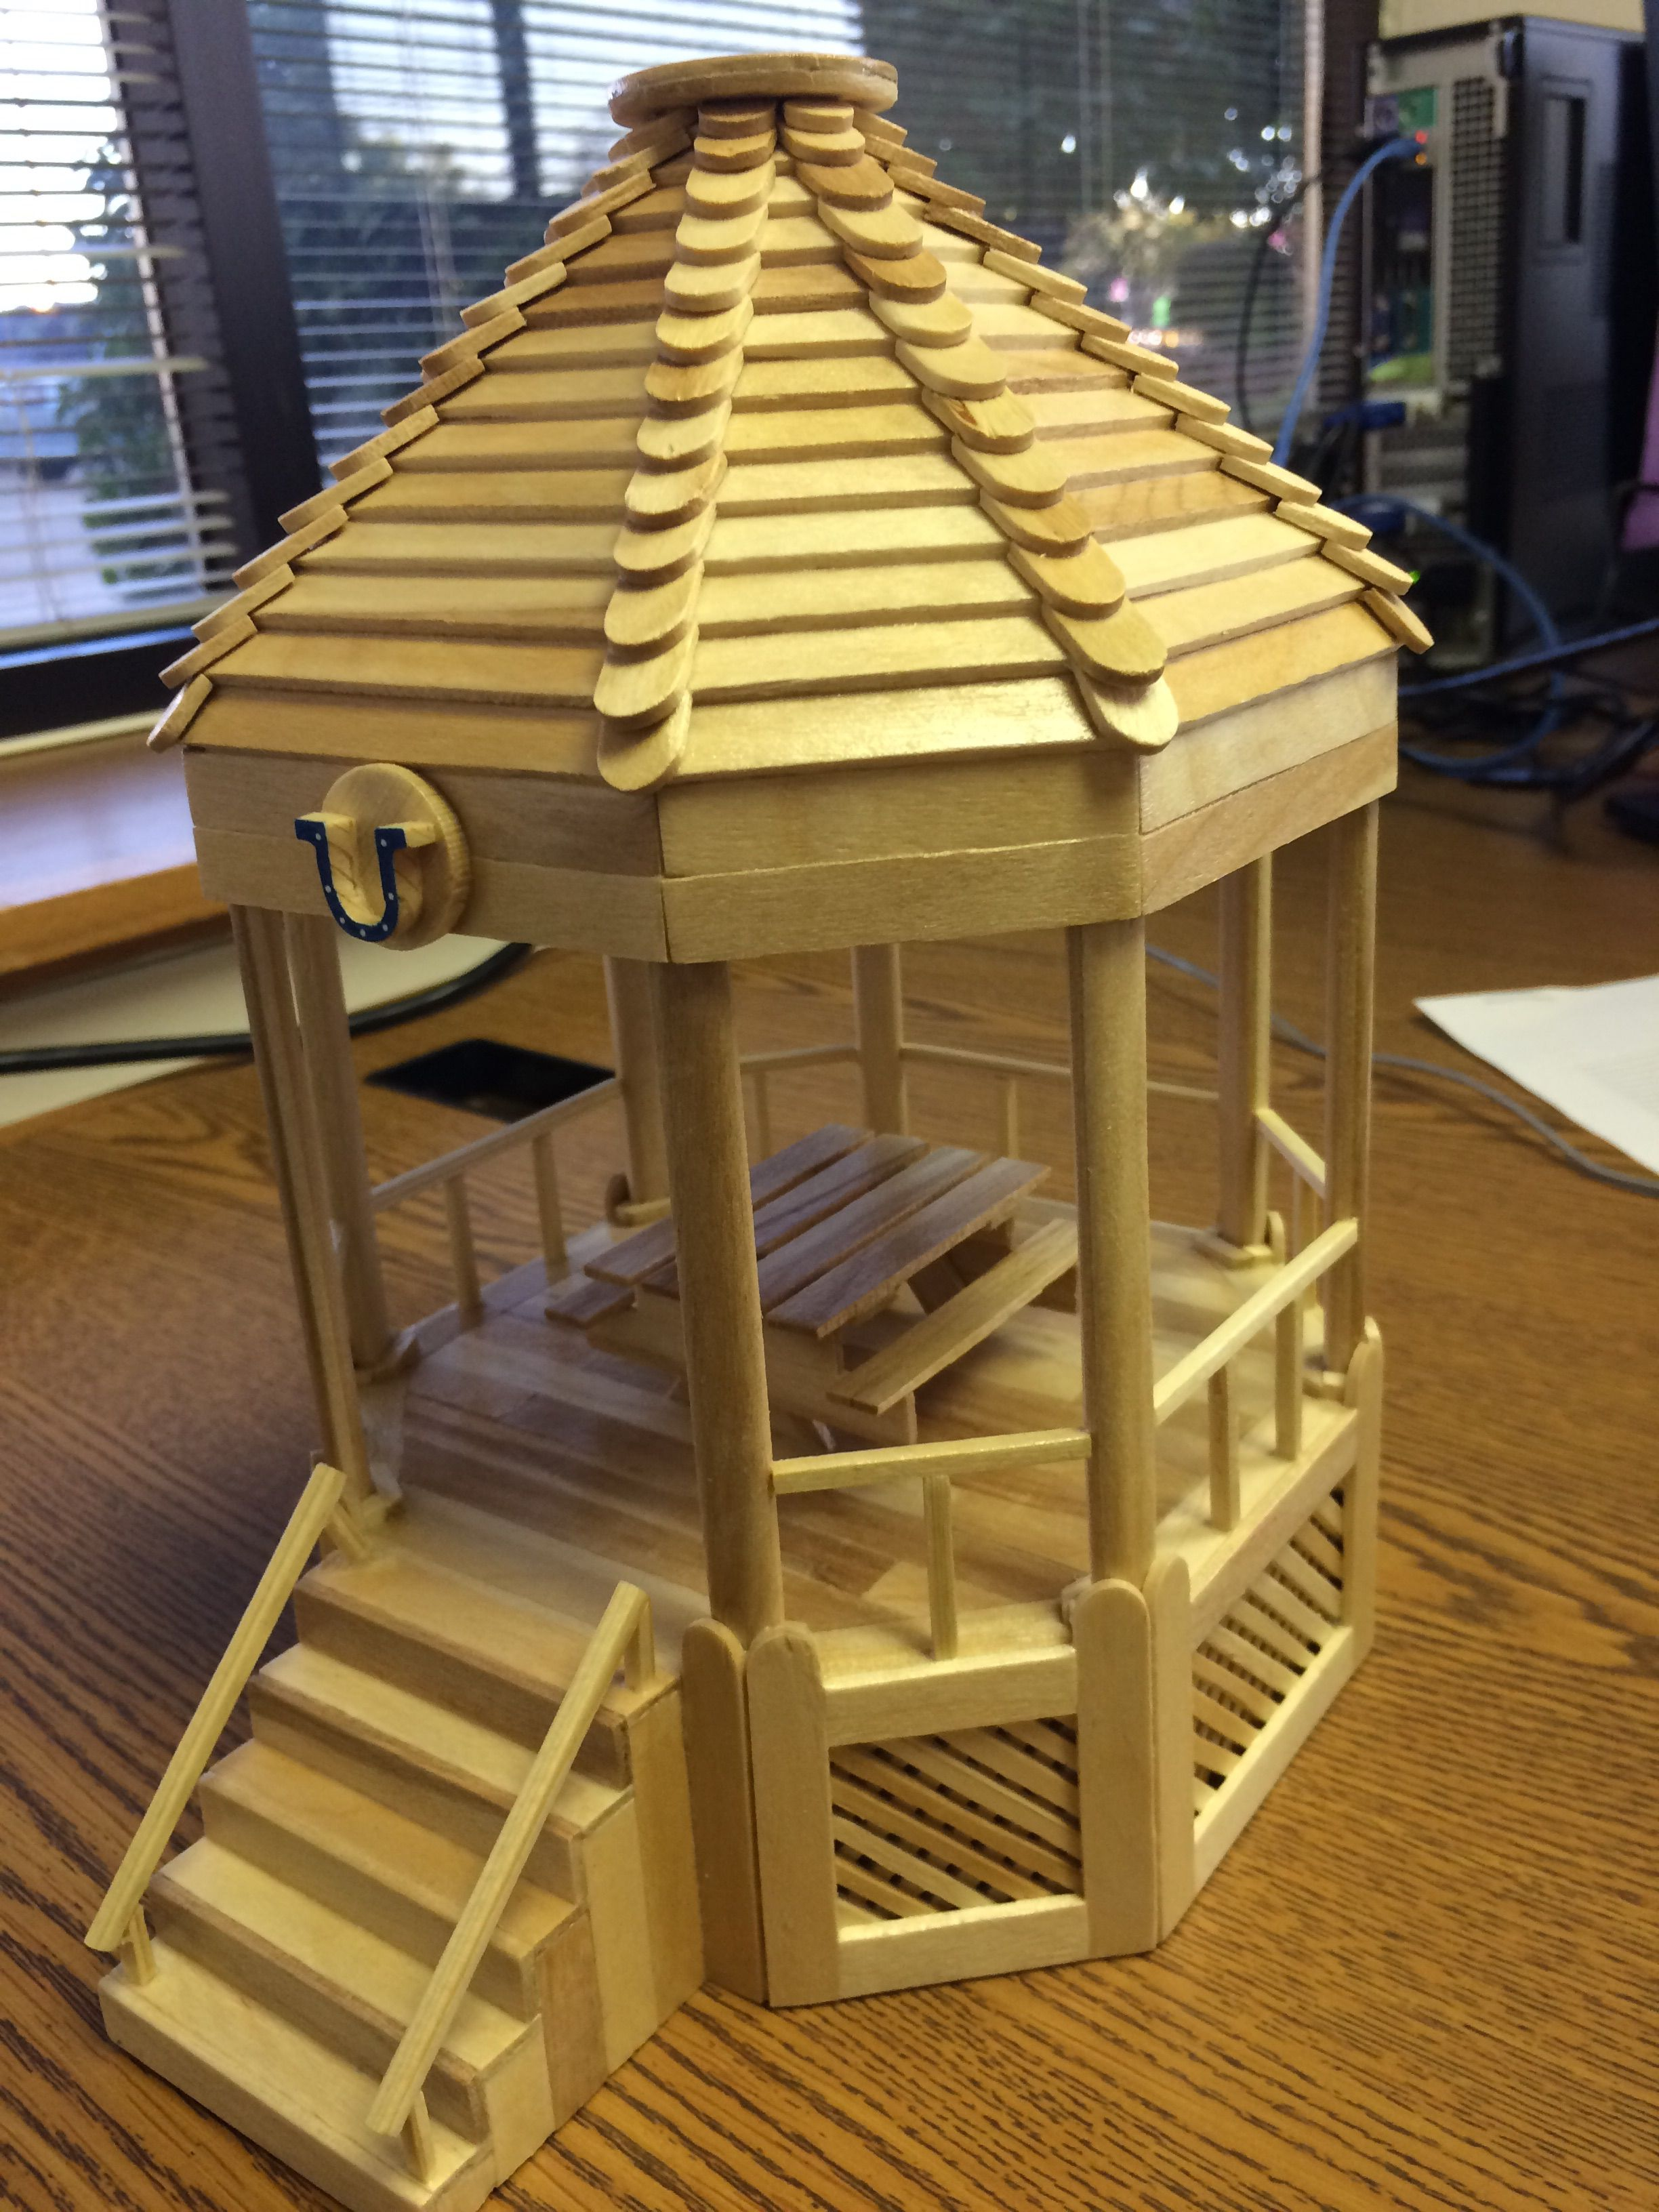 Gazebo Made From Popsicle Sticks At New Castle Correctional Facility In Indiana